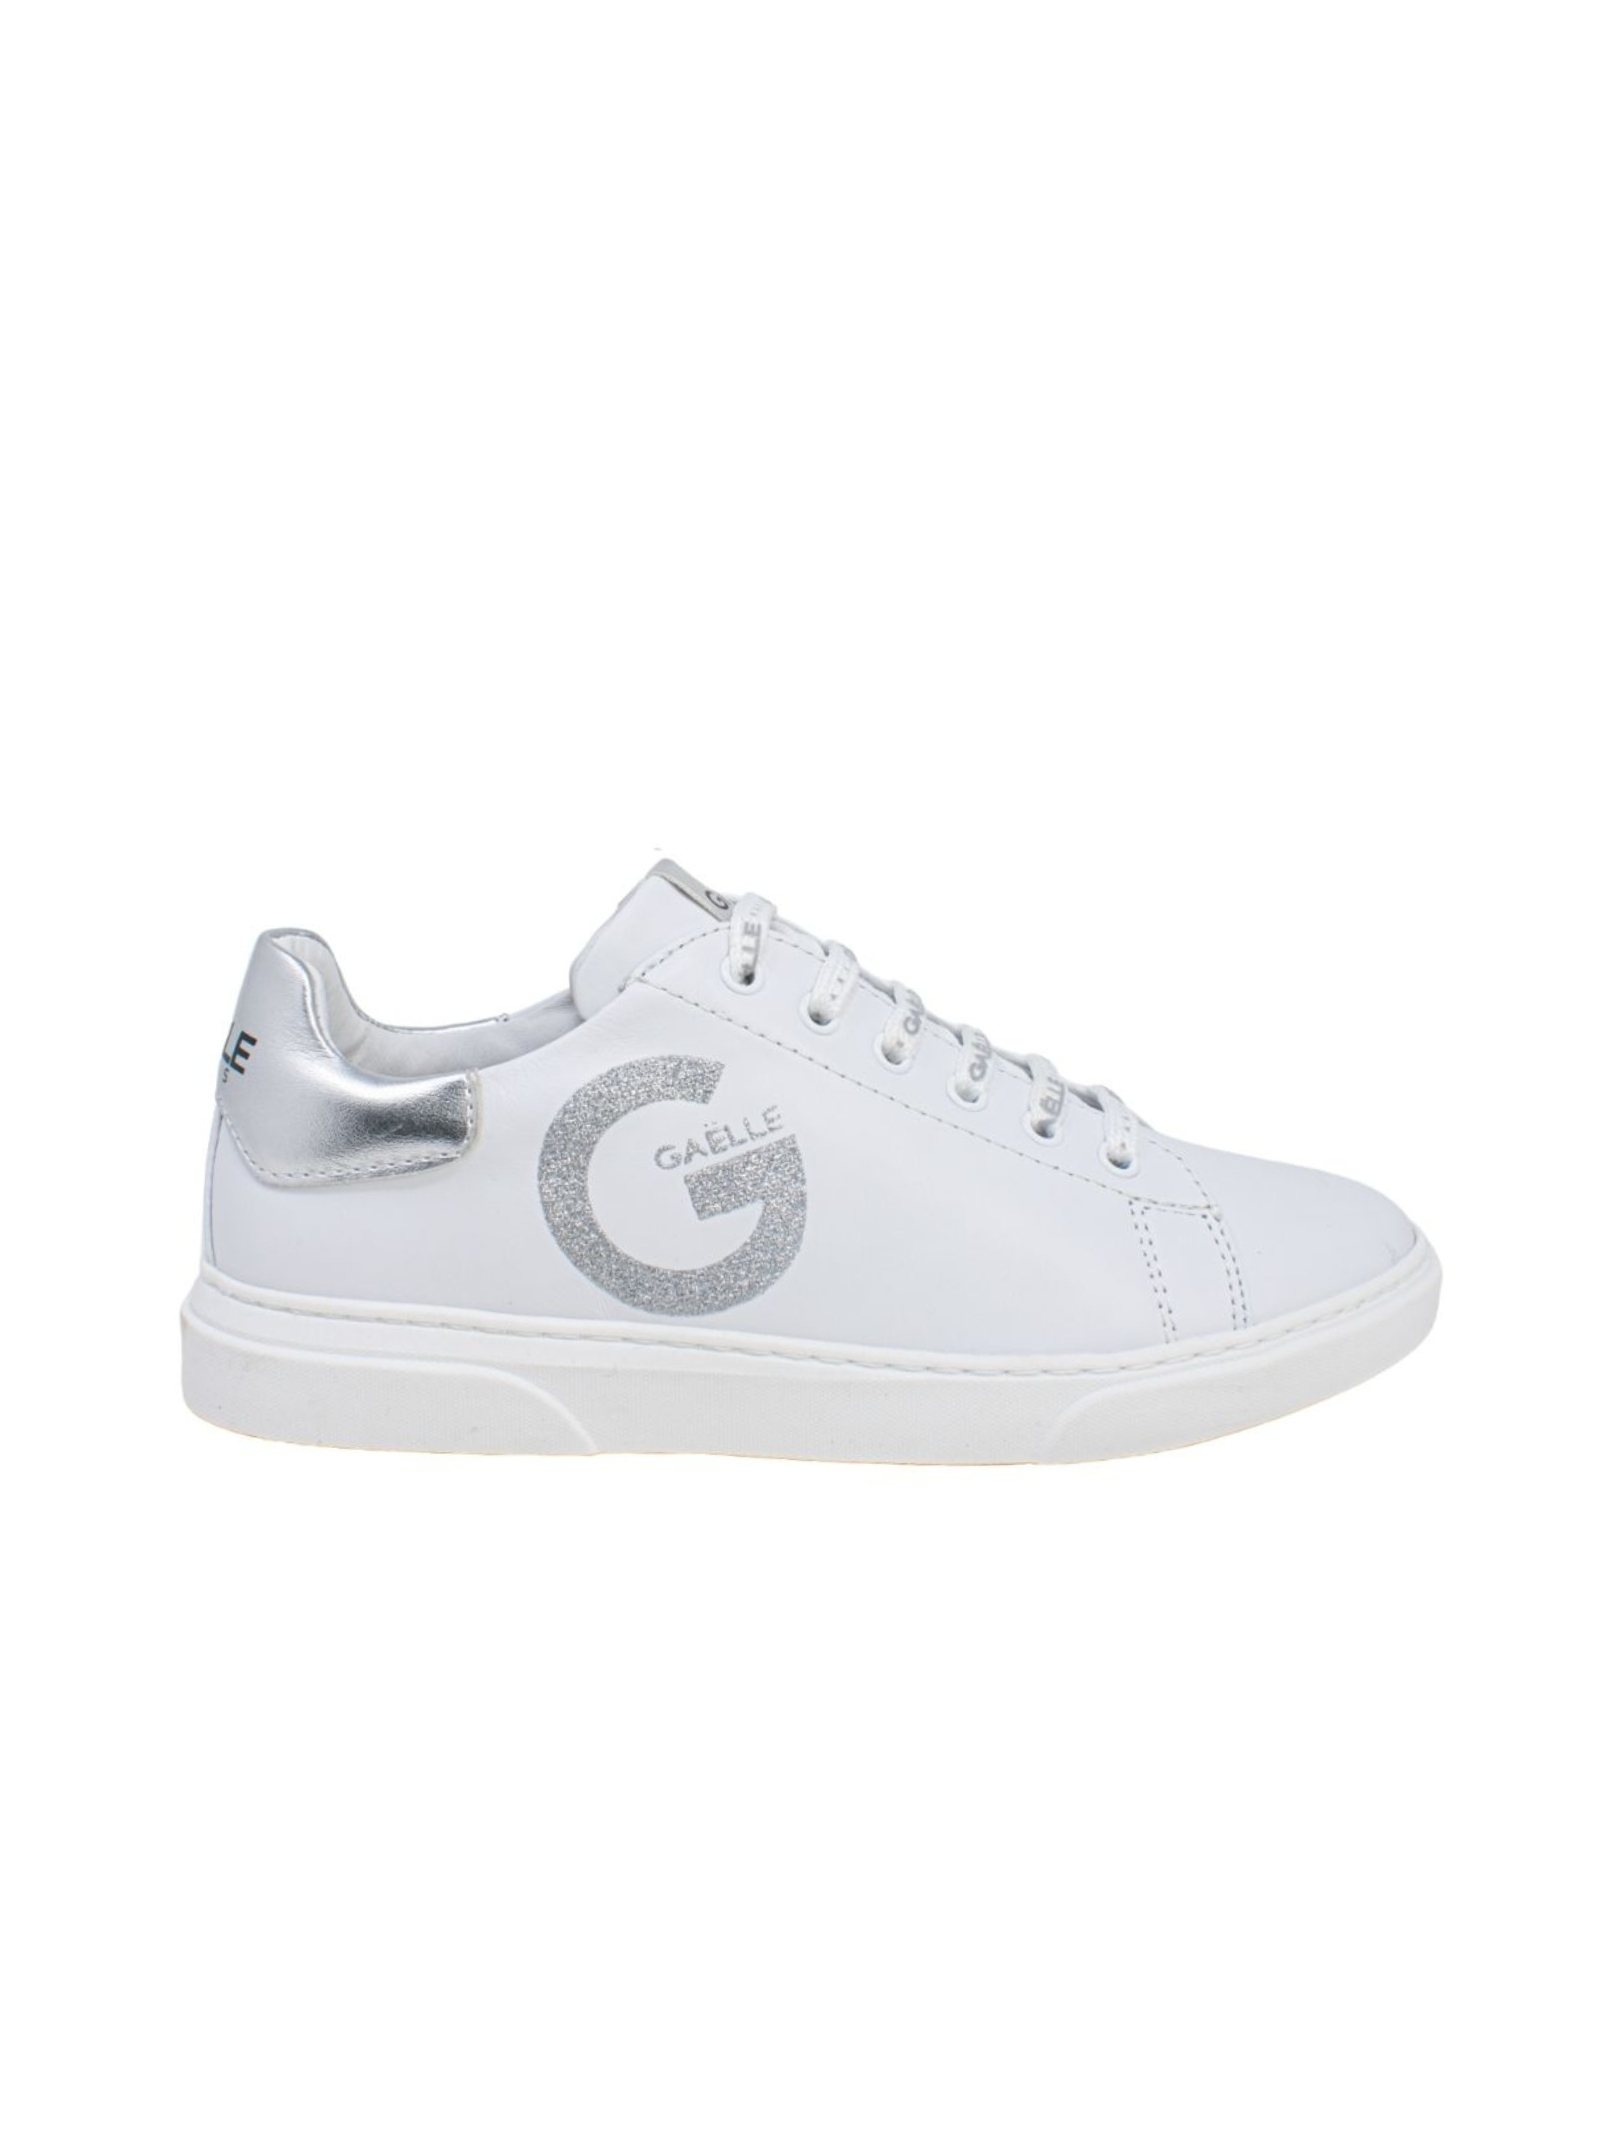 Sneakers Bambina Silver GAËLLE PARIS KIDS | Sneakers | G621BIANCO